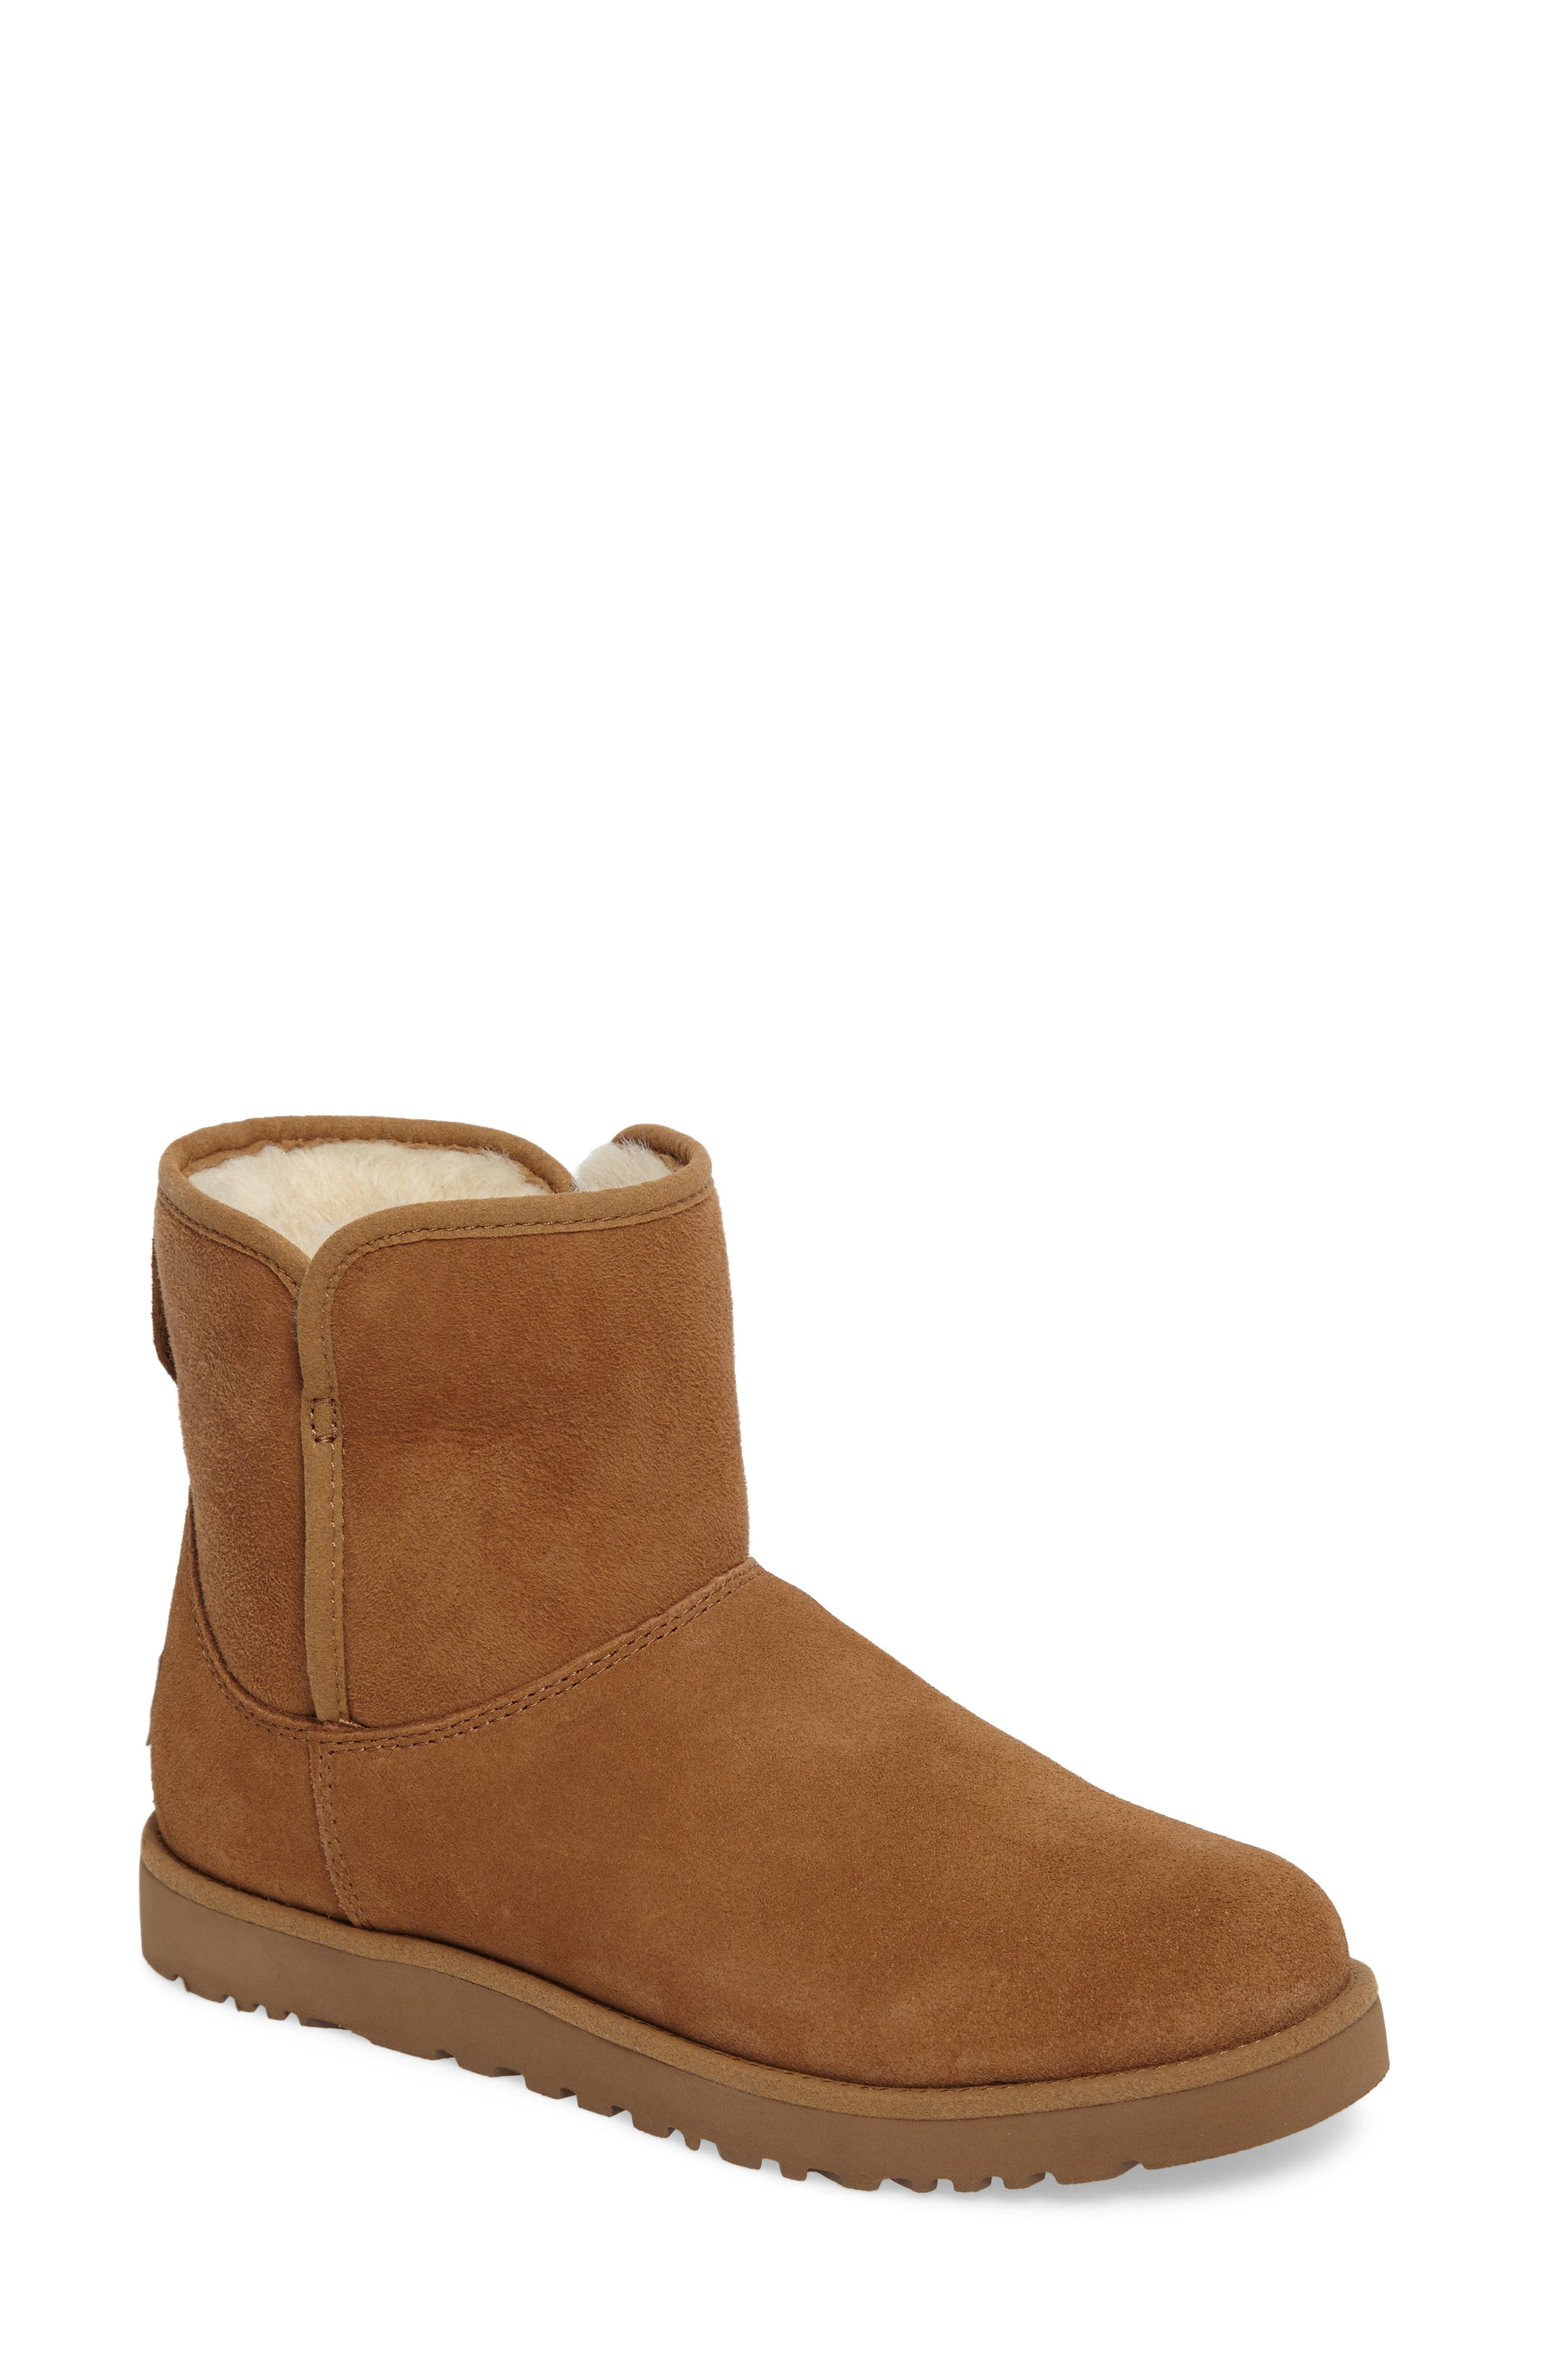 'Cory' Short Boot,                             Main thumbnail 1, color,                             Chestnut Suede